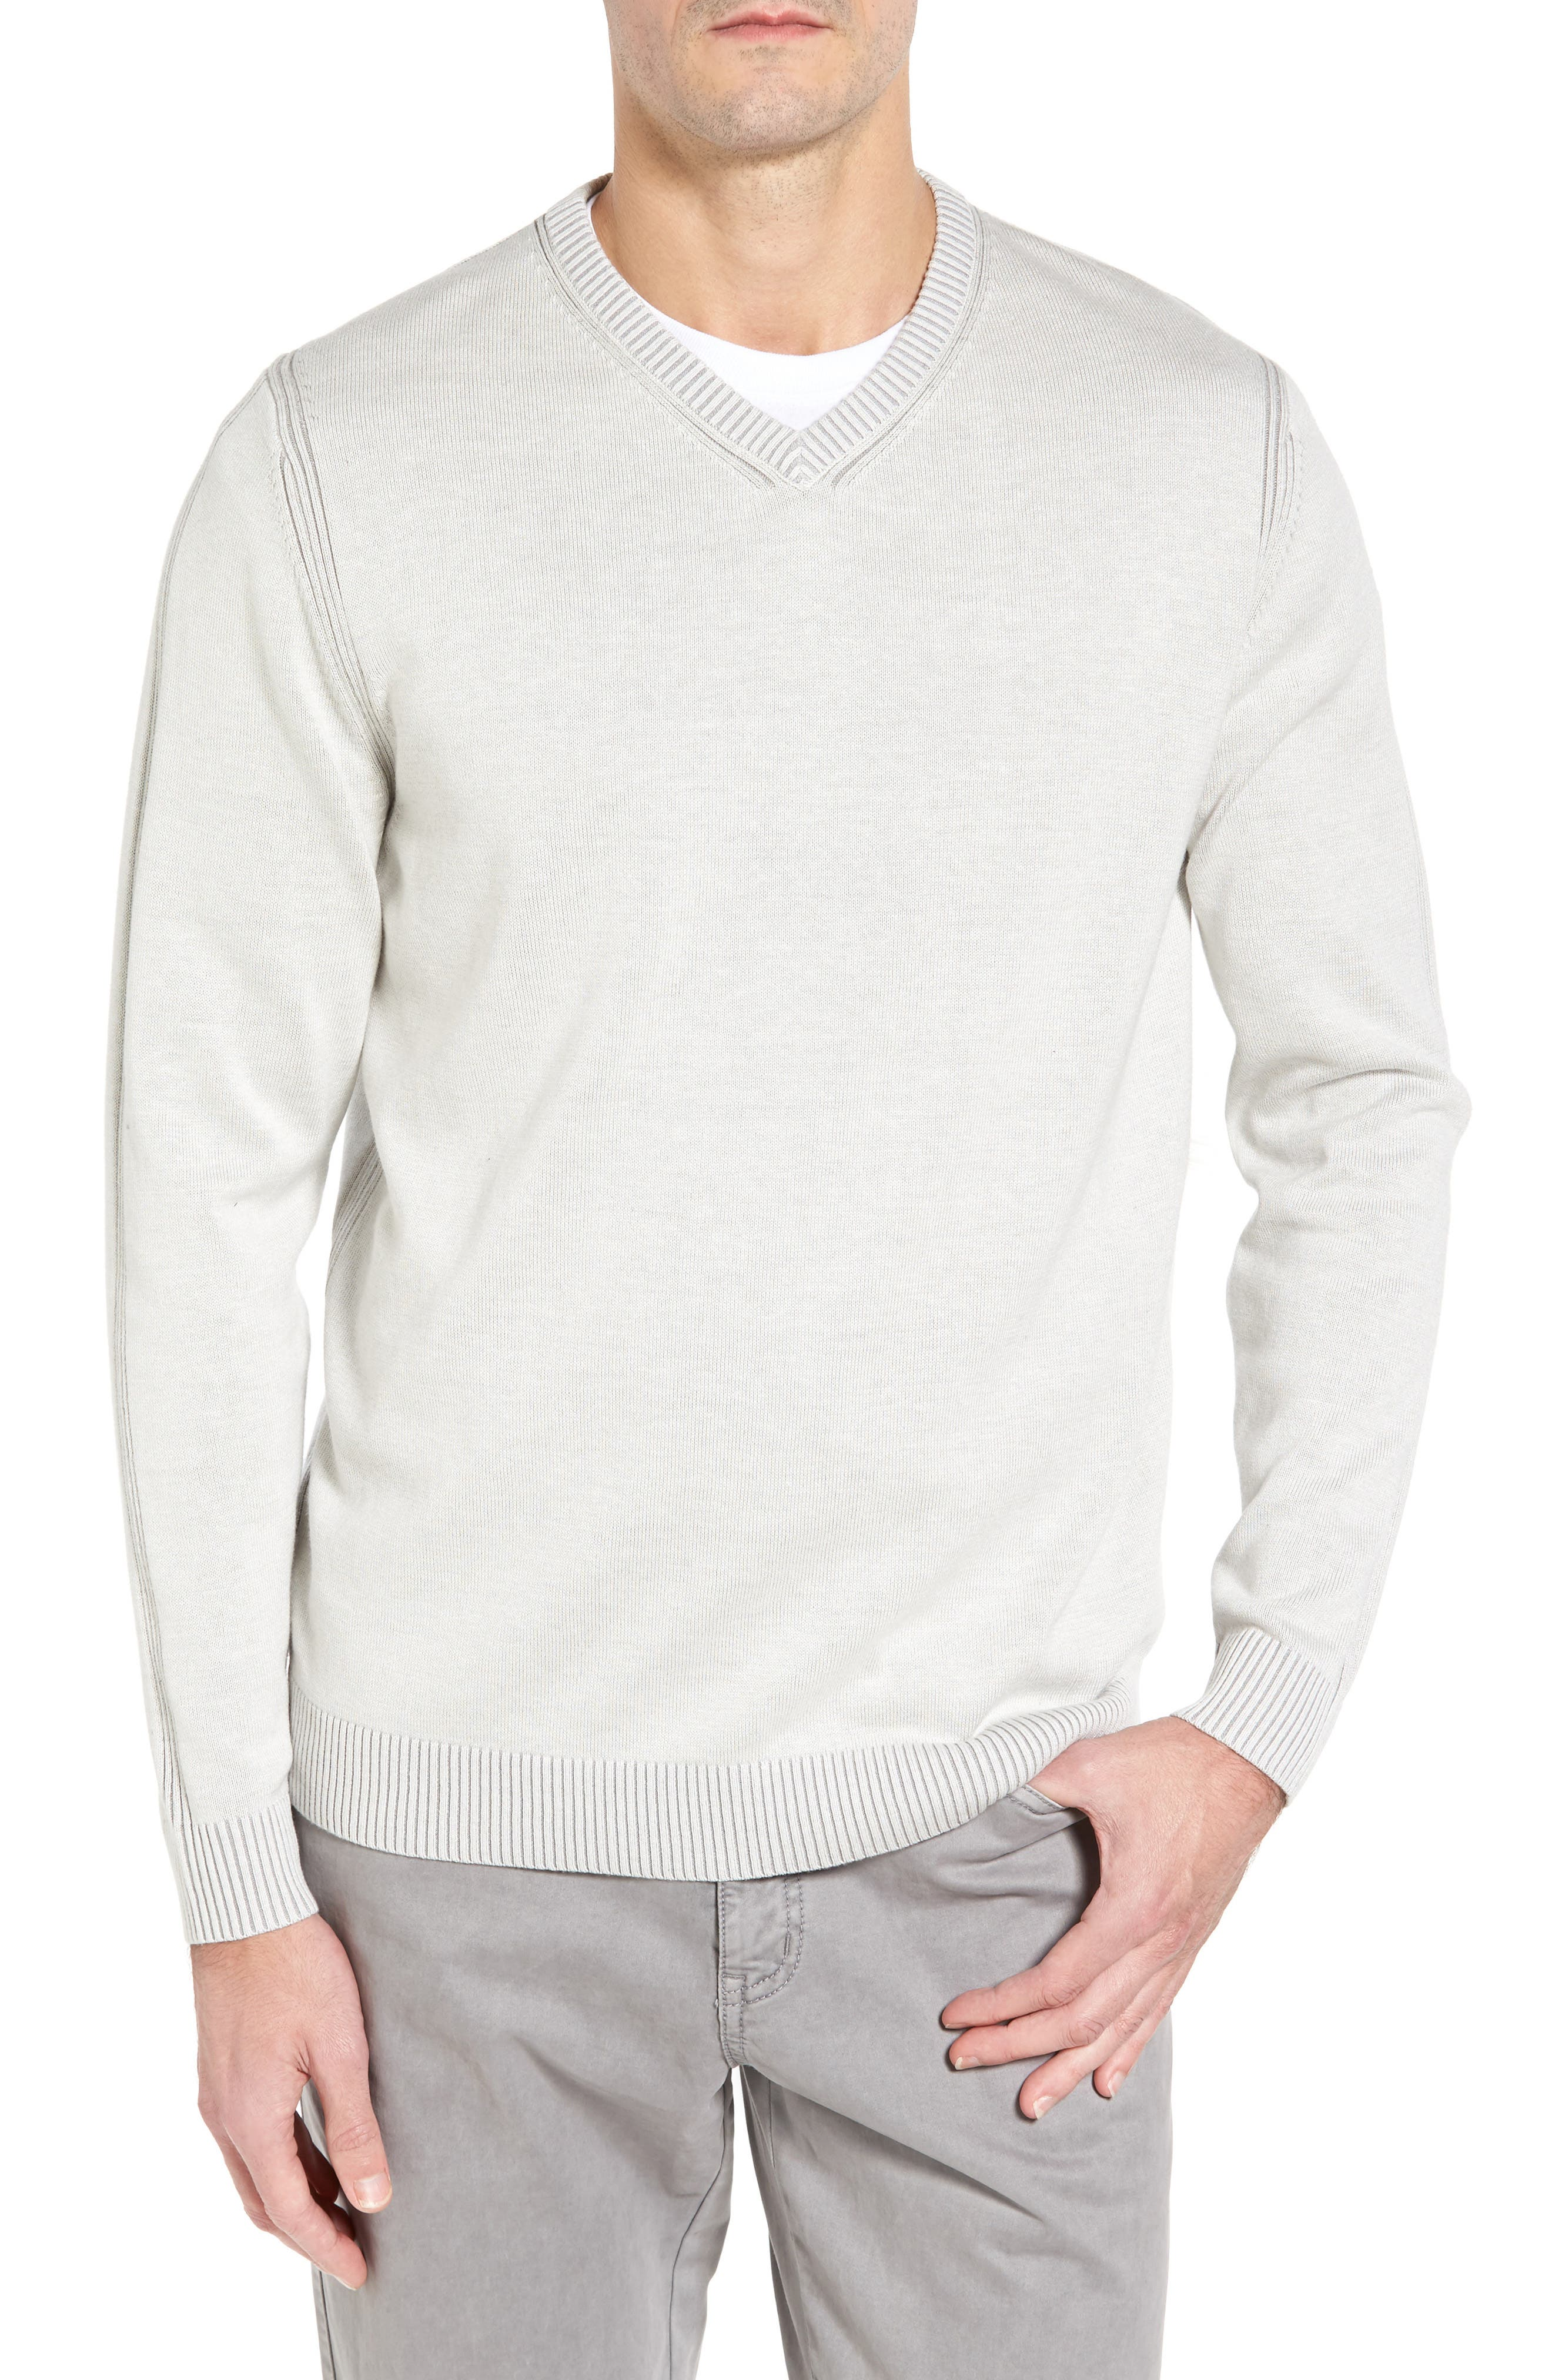 Alternate Image 1 Selected - Tommy Bahama Chief Island Officer Silk Blend Sweater